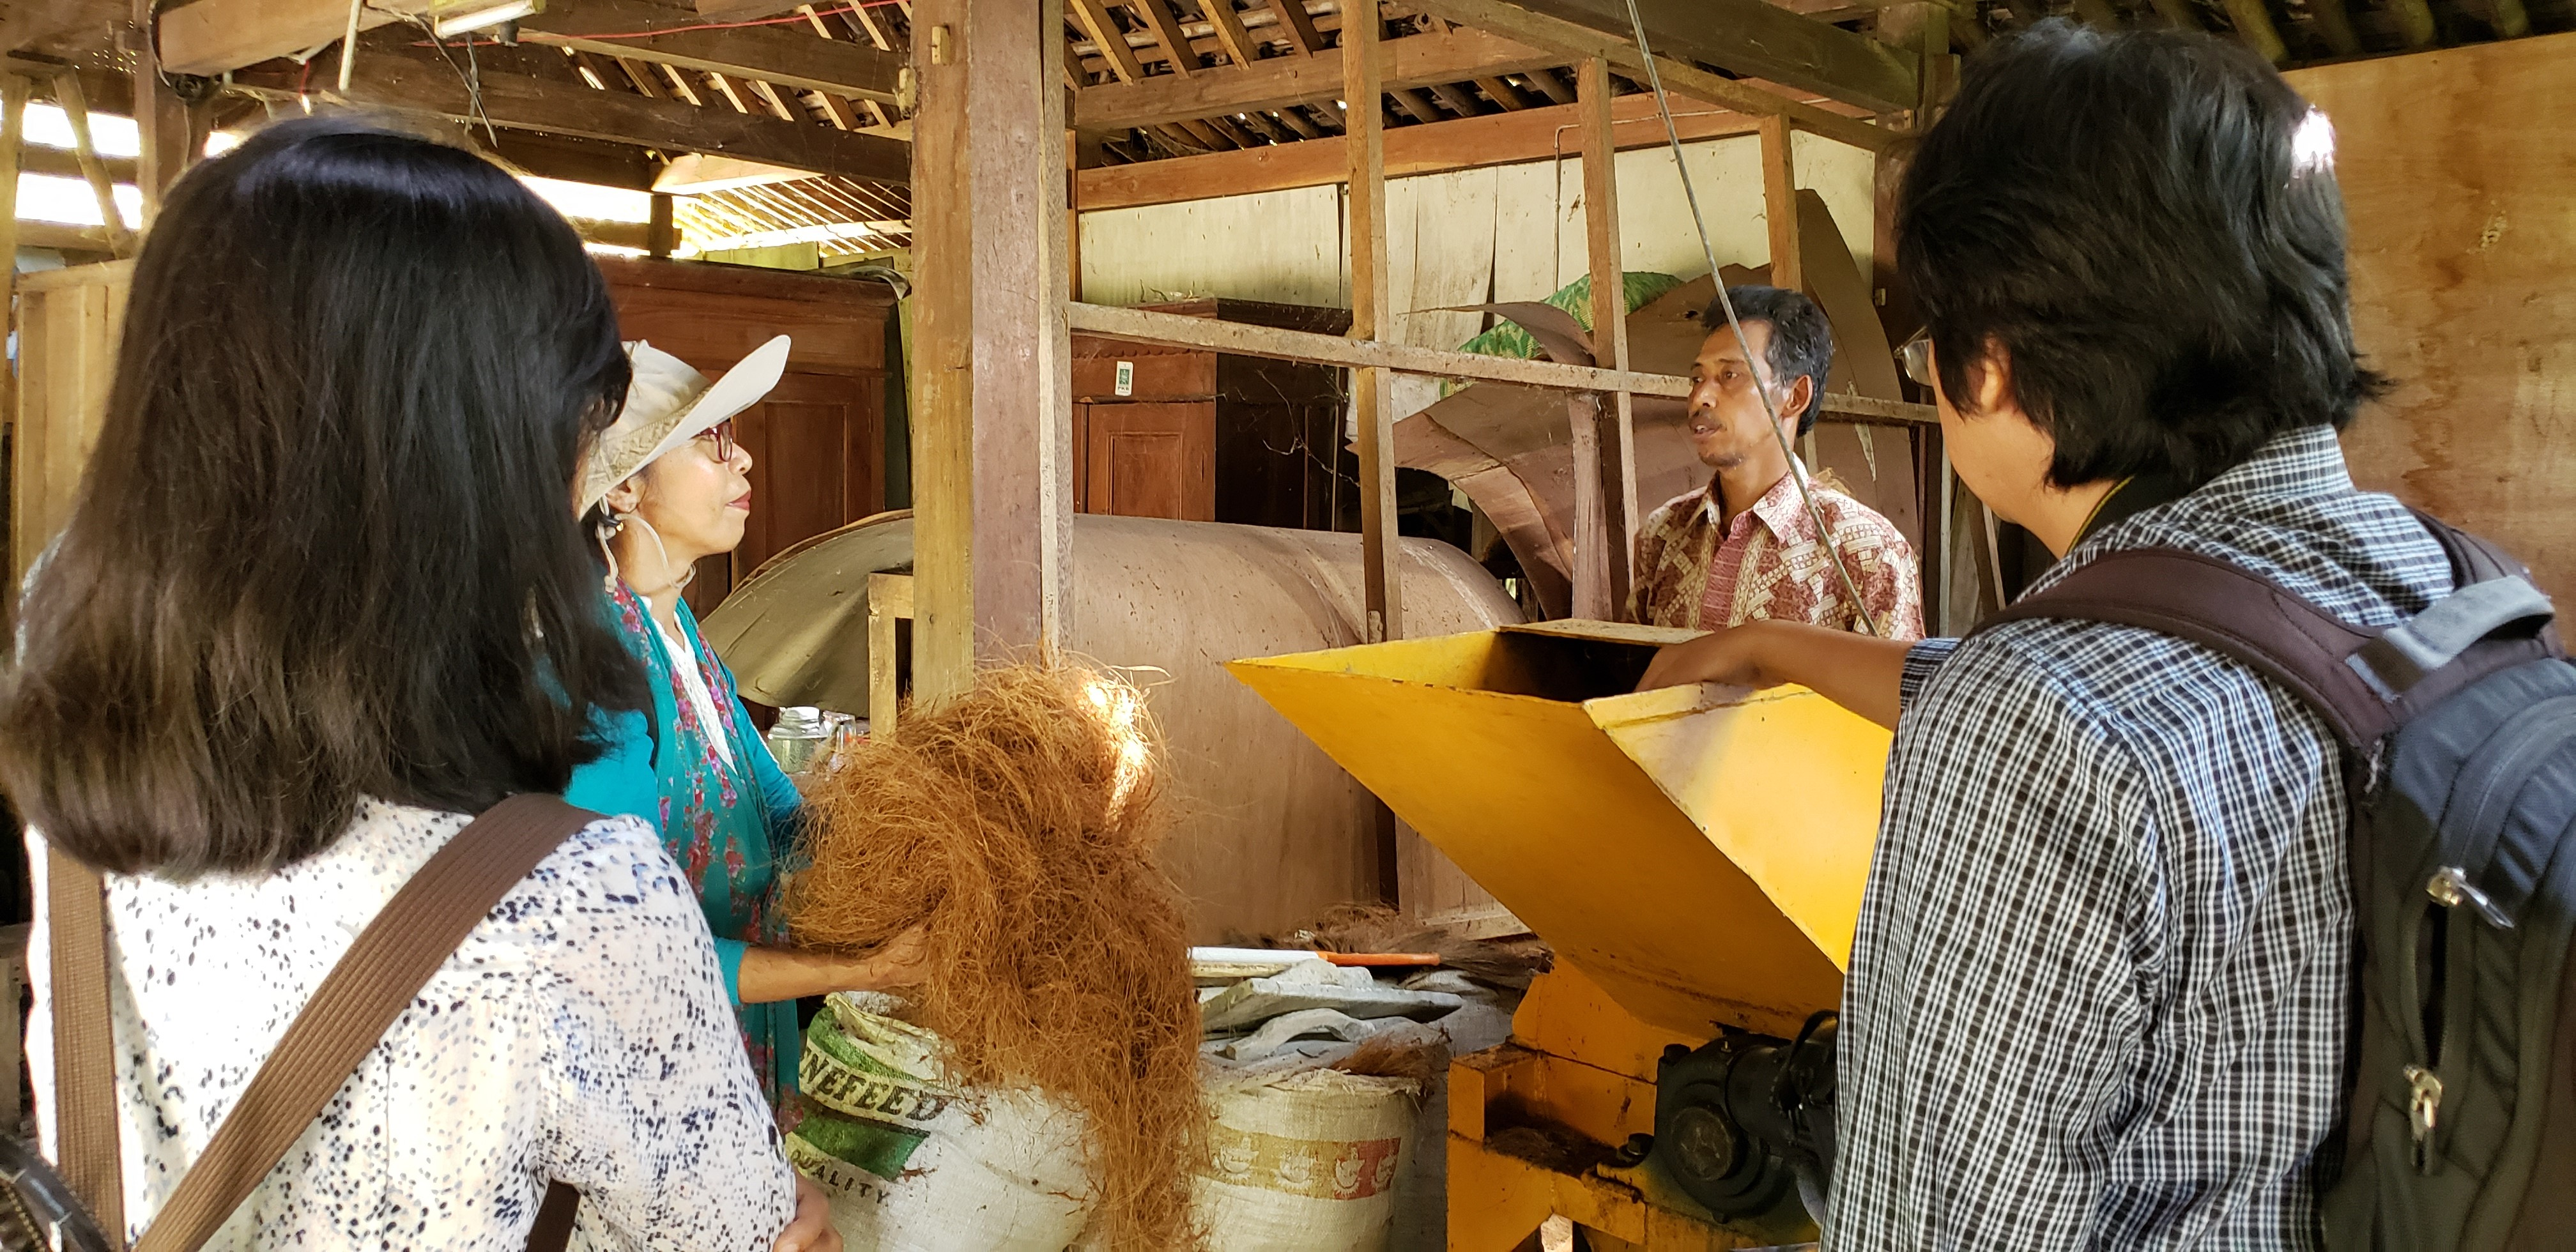 As a member of the co-op, pak Gunawan explained about the need for having a new house to operate the machine for processing coconut fiber.